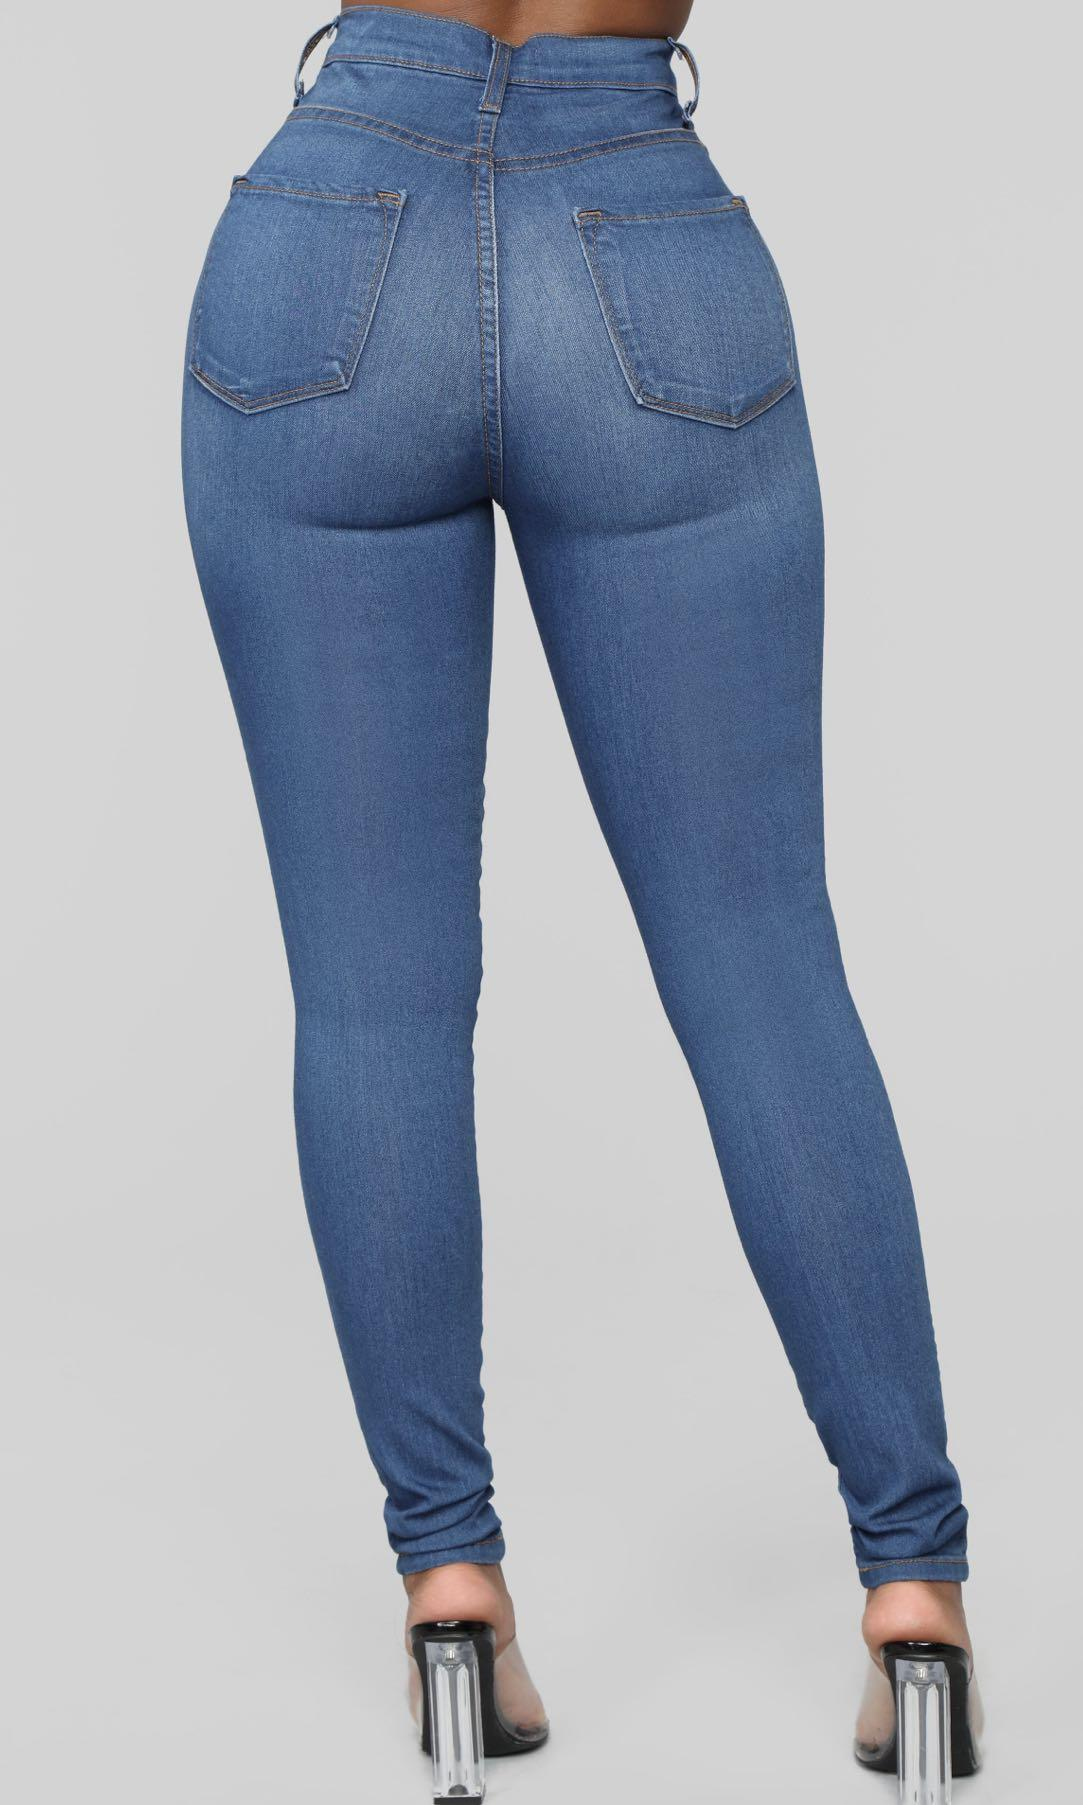 Fashion Nova Classic high waist skinny jeans - medium wash blue